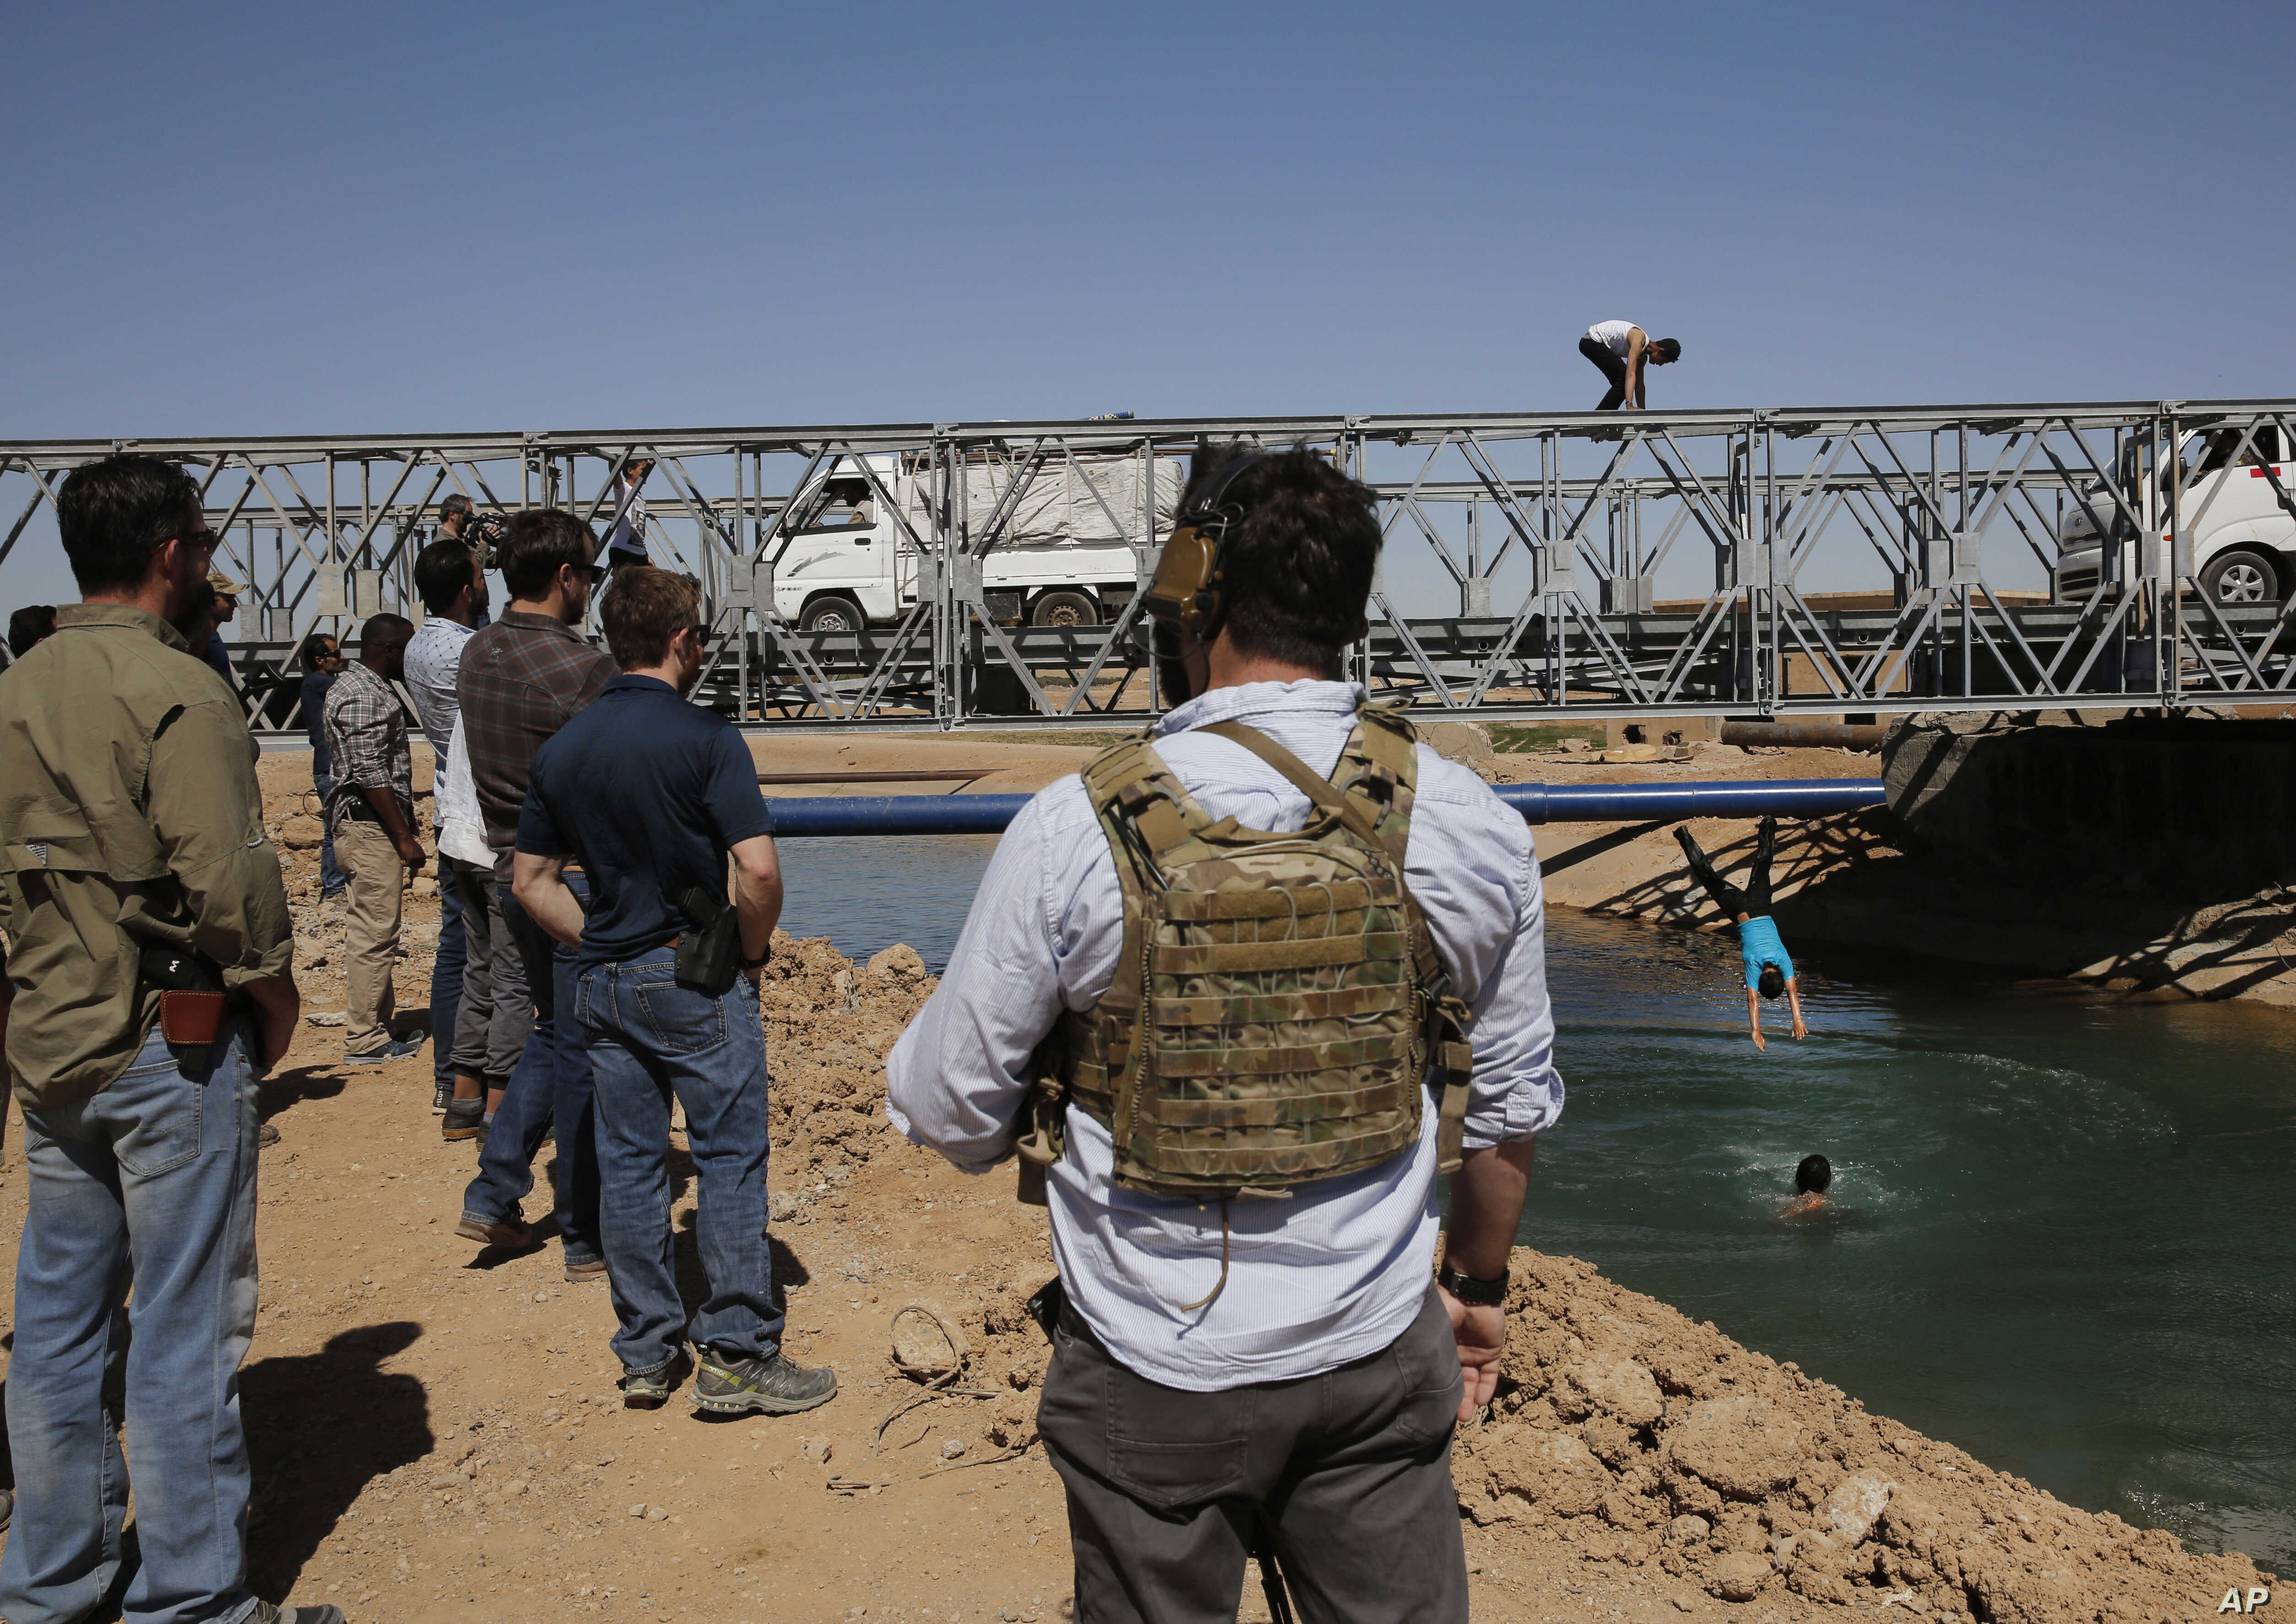 U.S. soldiers in civilian clothes, foreground, watch boys diving into a canal from a newly opened bridge, which had been destroyed last summer during fighting between U.S.-backed Syrian Democratic Forces fighters and Islamic State militants, in Raqqa...